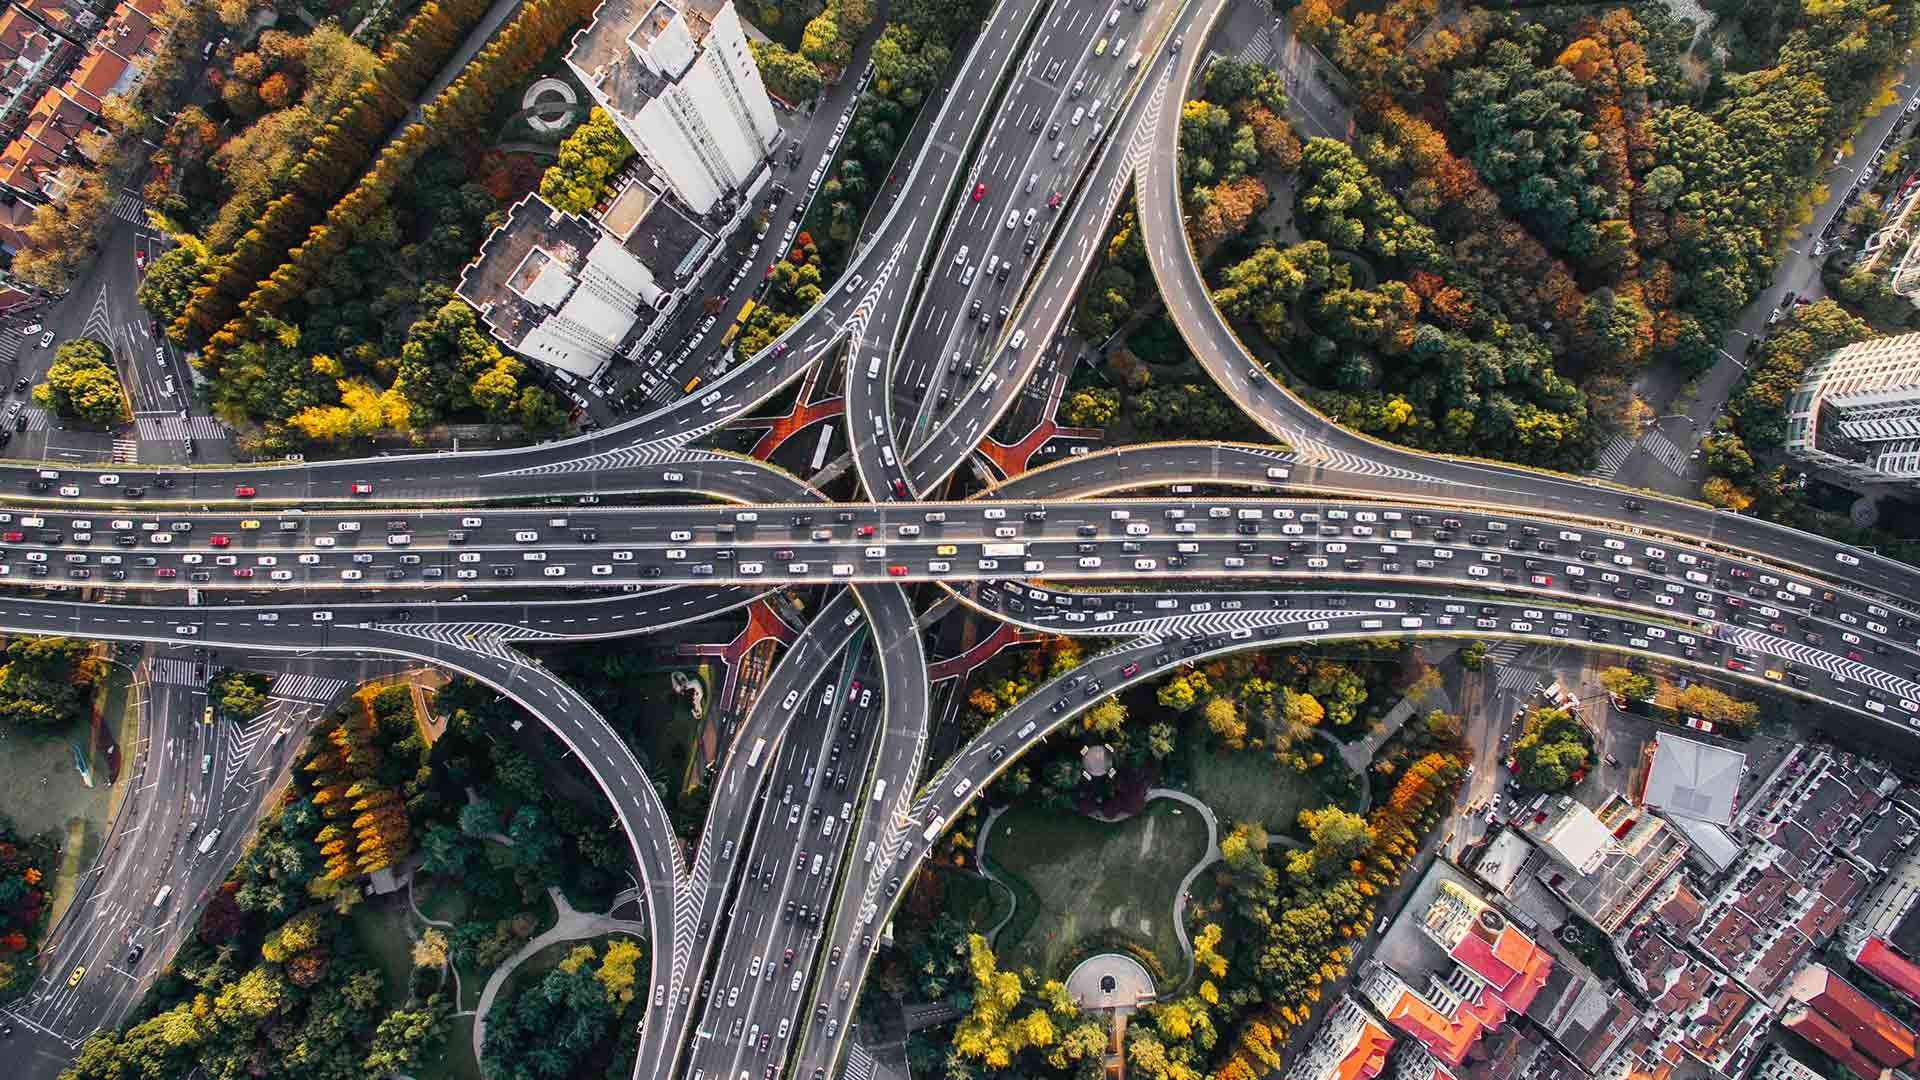 An arial view of a highway system, packed with cars.